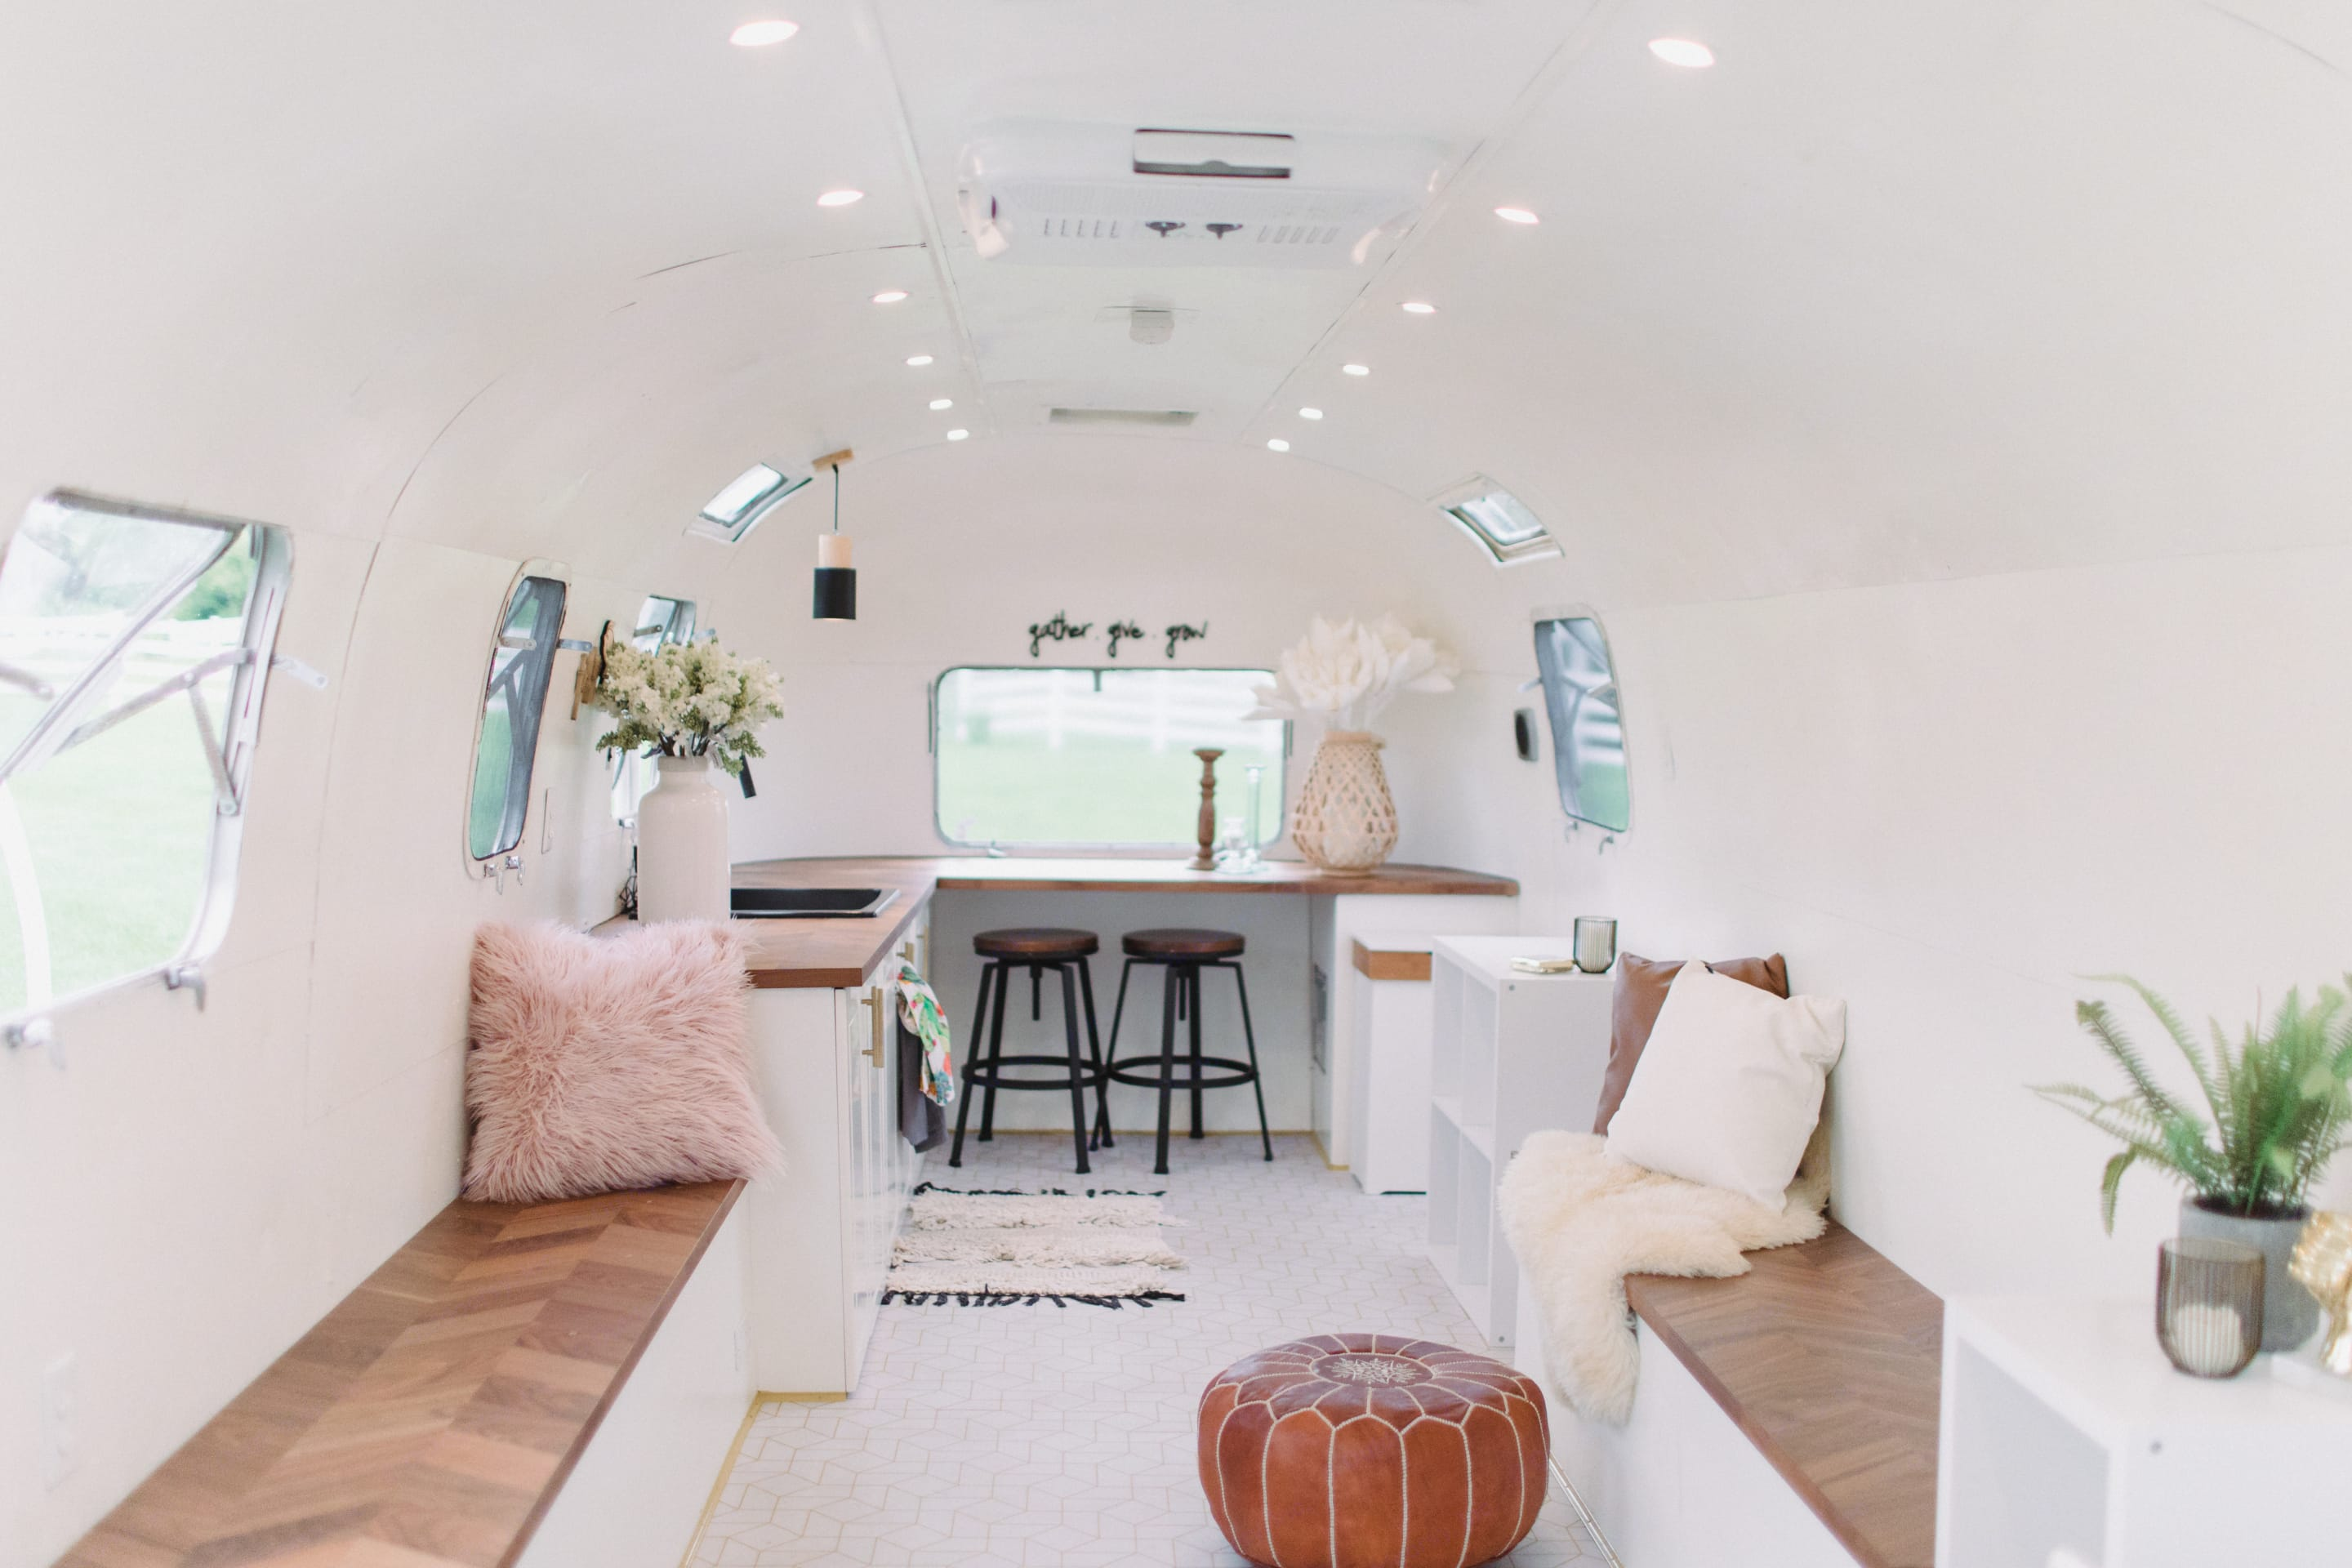 Add our beautiful conference table to the center for dinners and meetings or use as an open party space.. Airstream Land Yacht 1976